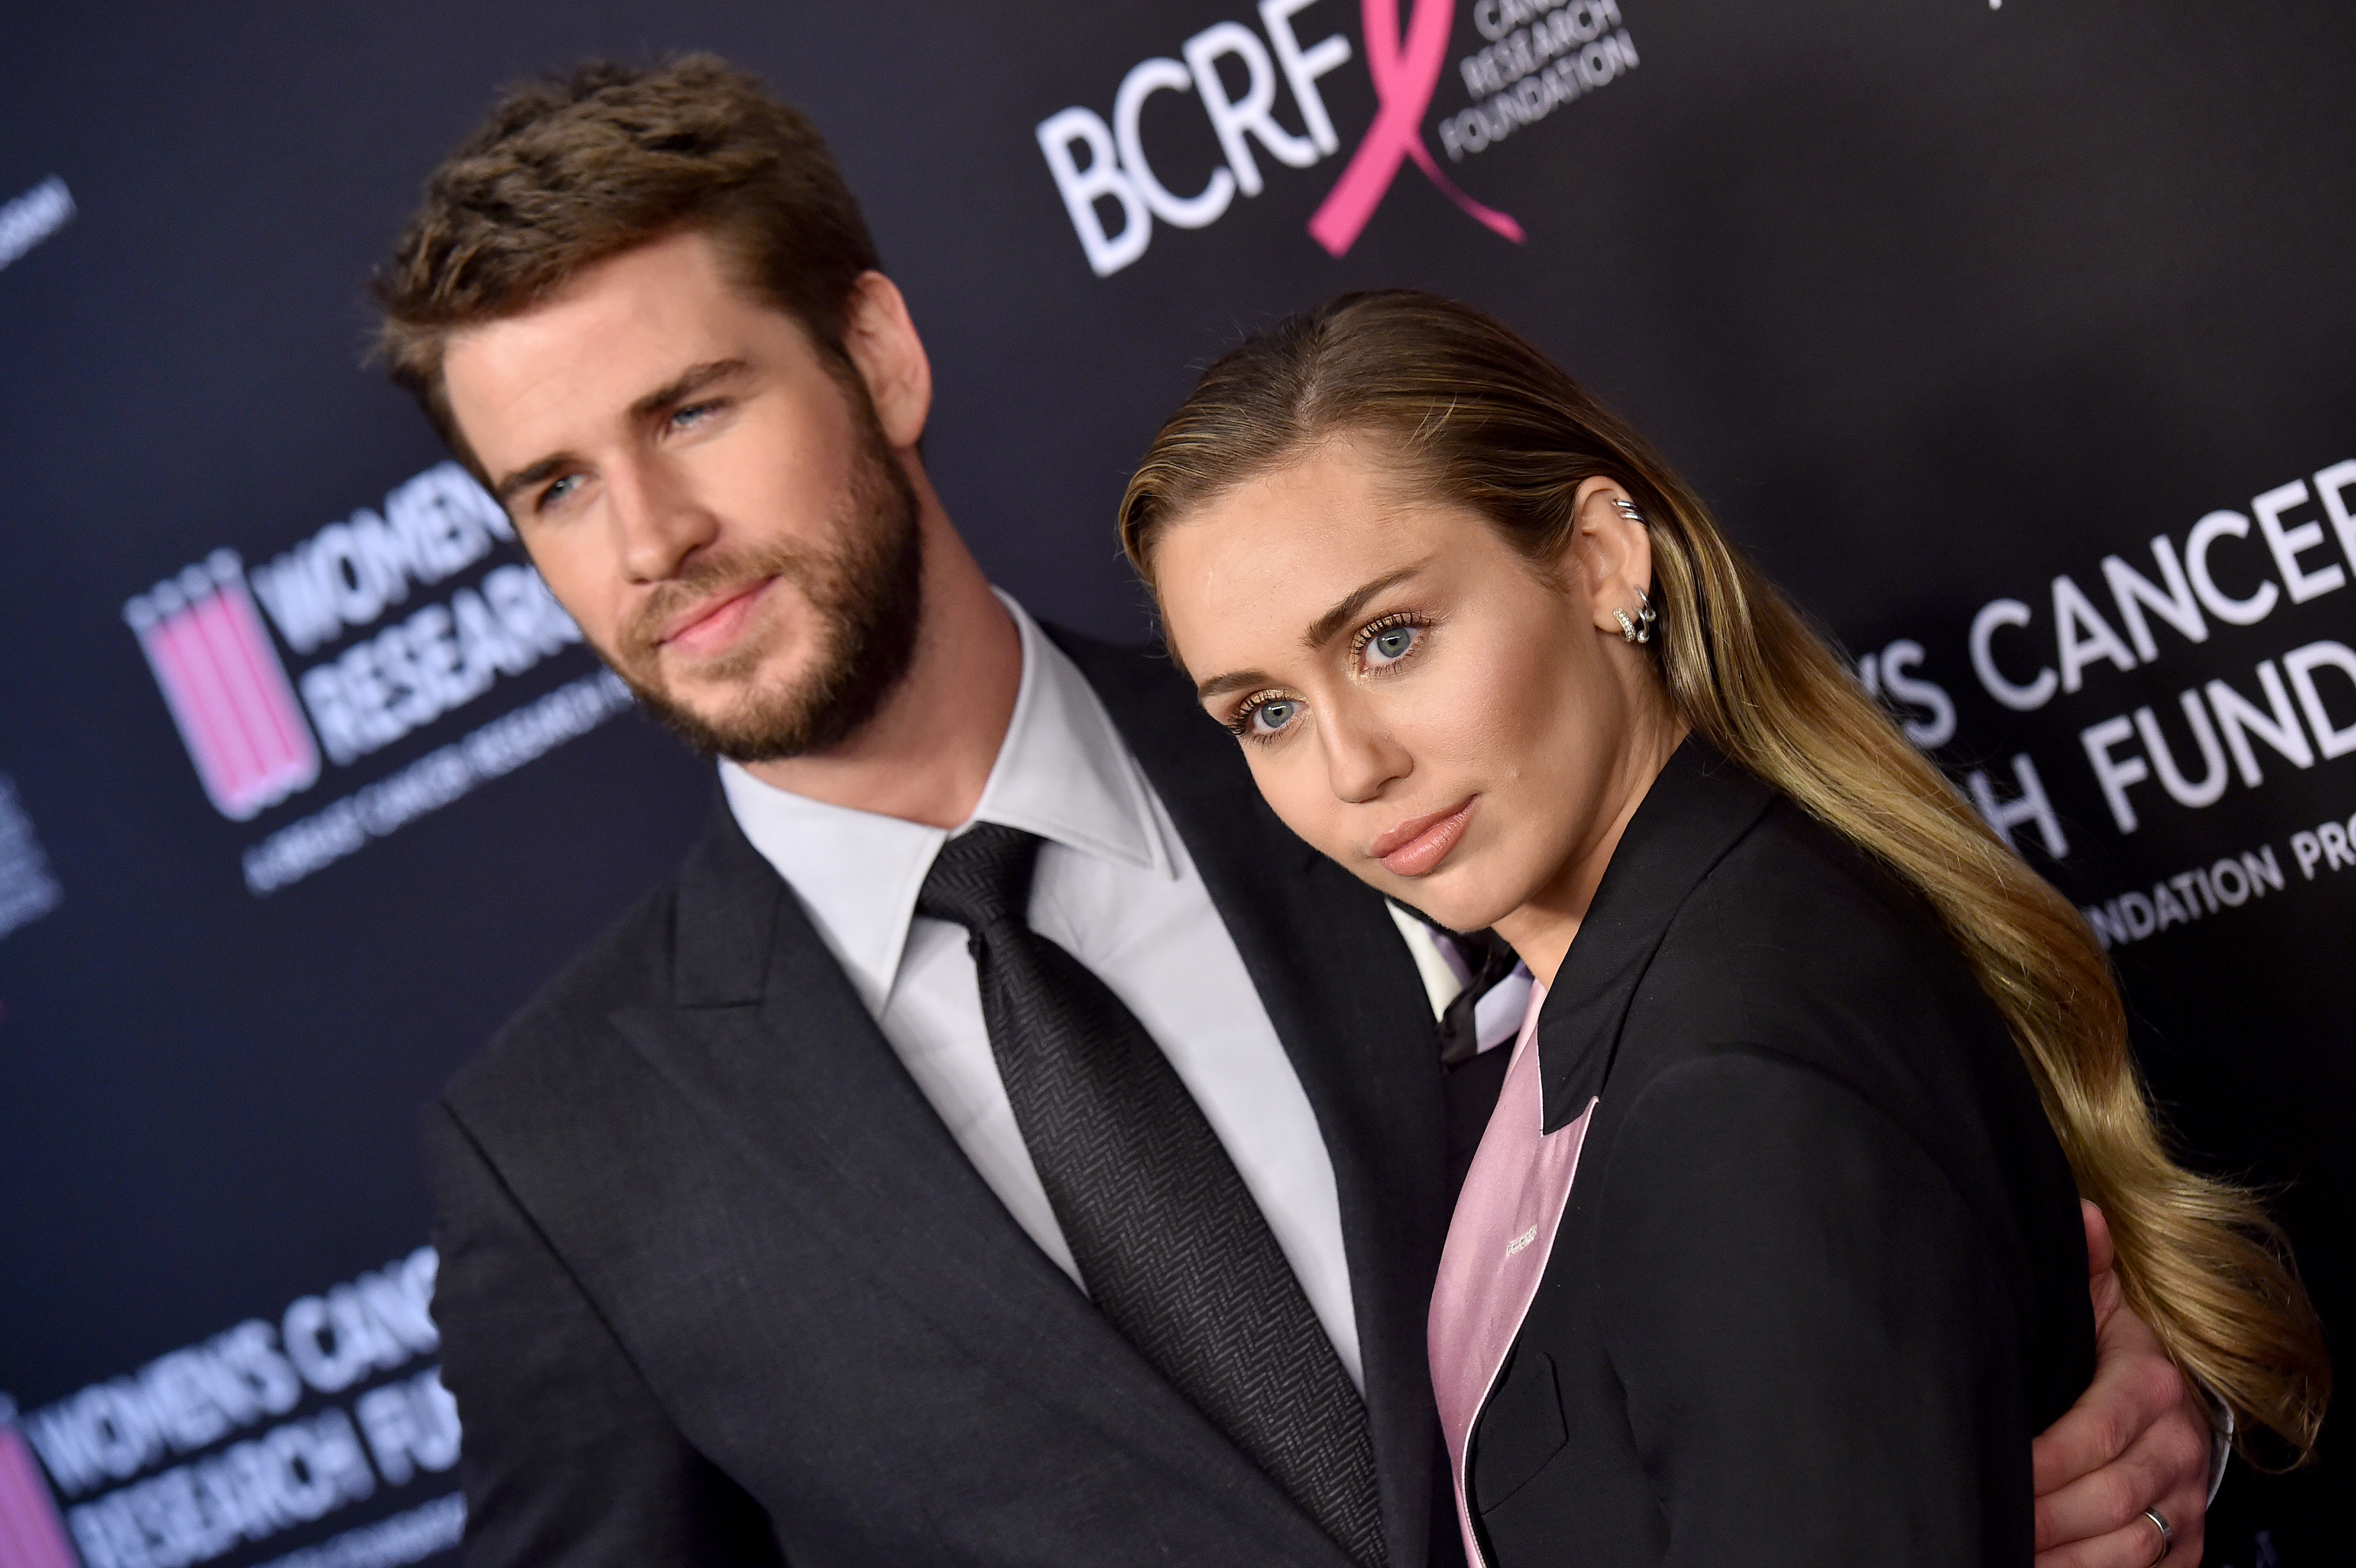 How Kaitlynn Carter and Brody Jenner Got Tangled Up in Miley Cyrus's Breakup Story